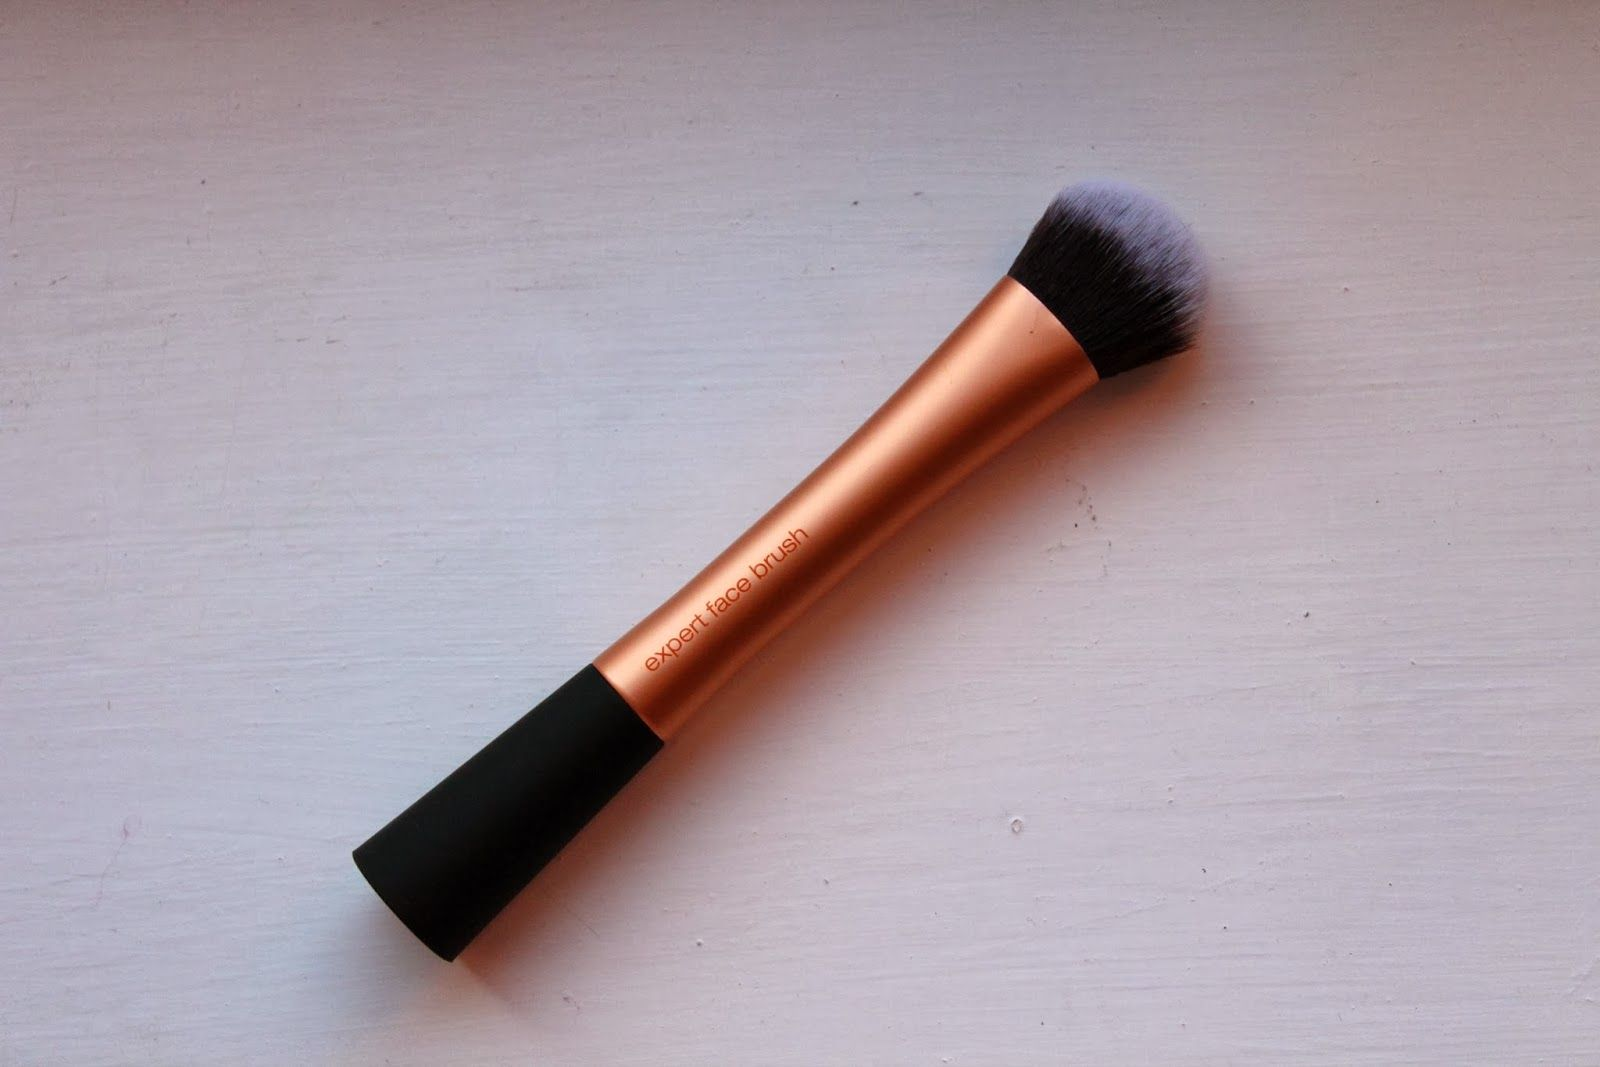 Little Miss Lifestyle UK Beauty and Lifestyle Blog: Review: Real Techniques   Expert Face Brush  